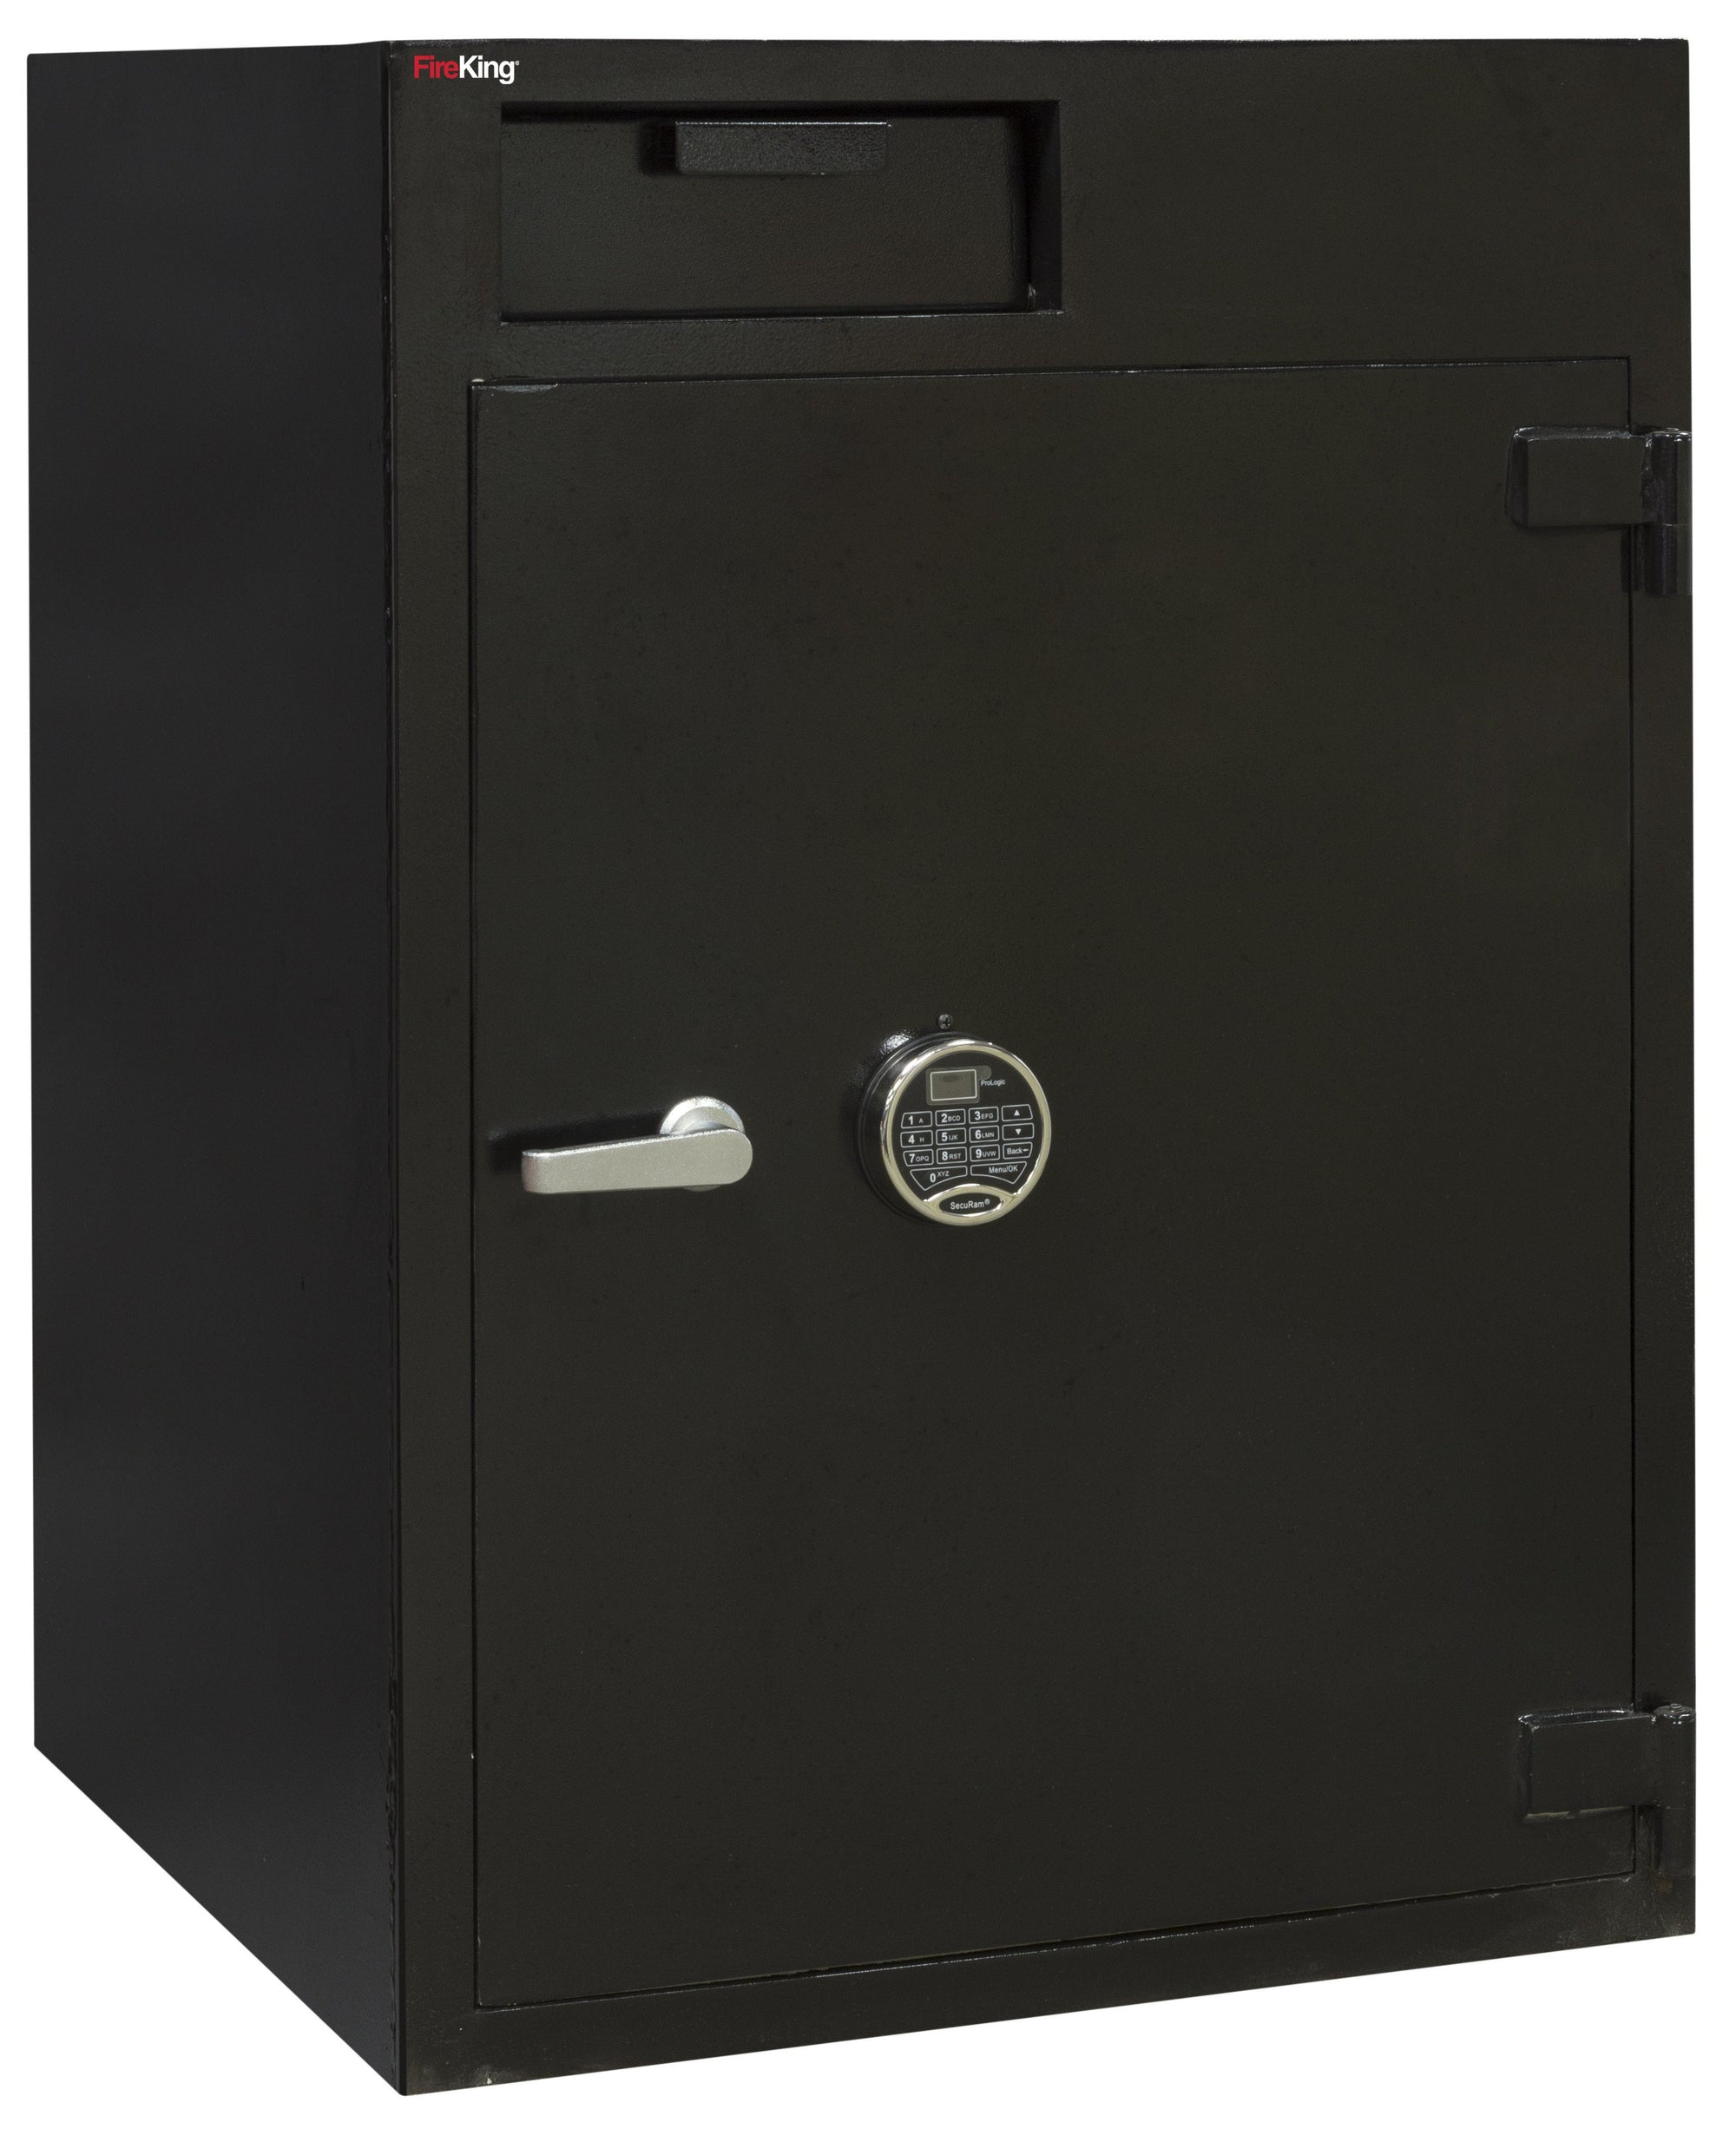 Mail Box Drop Safes - FireKing B4230 Mail Box Drop Safes